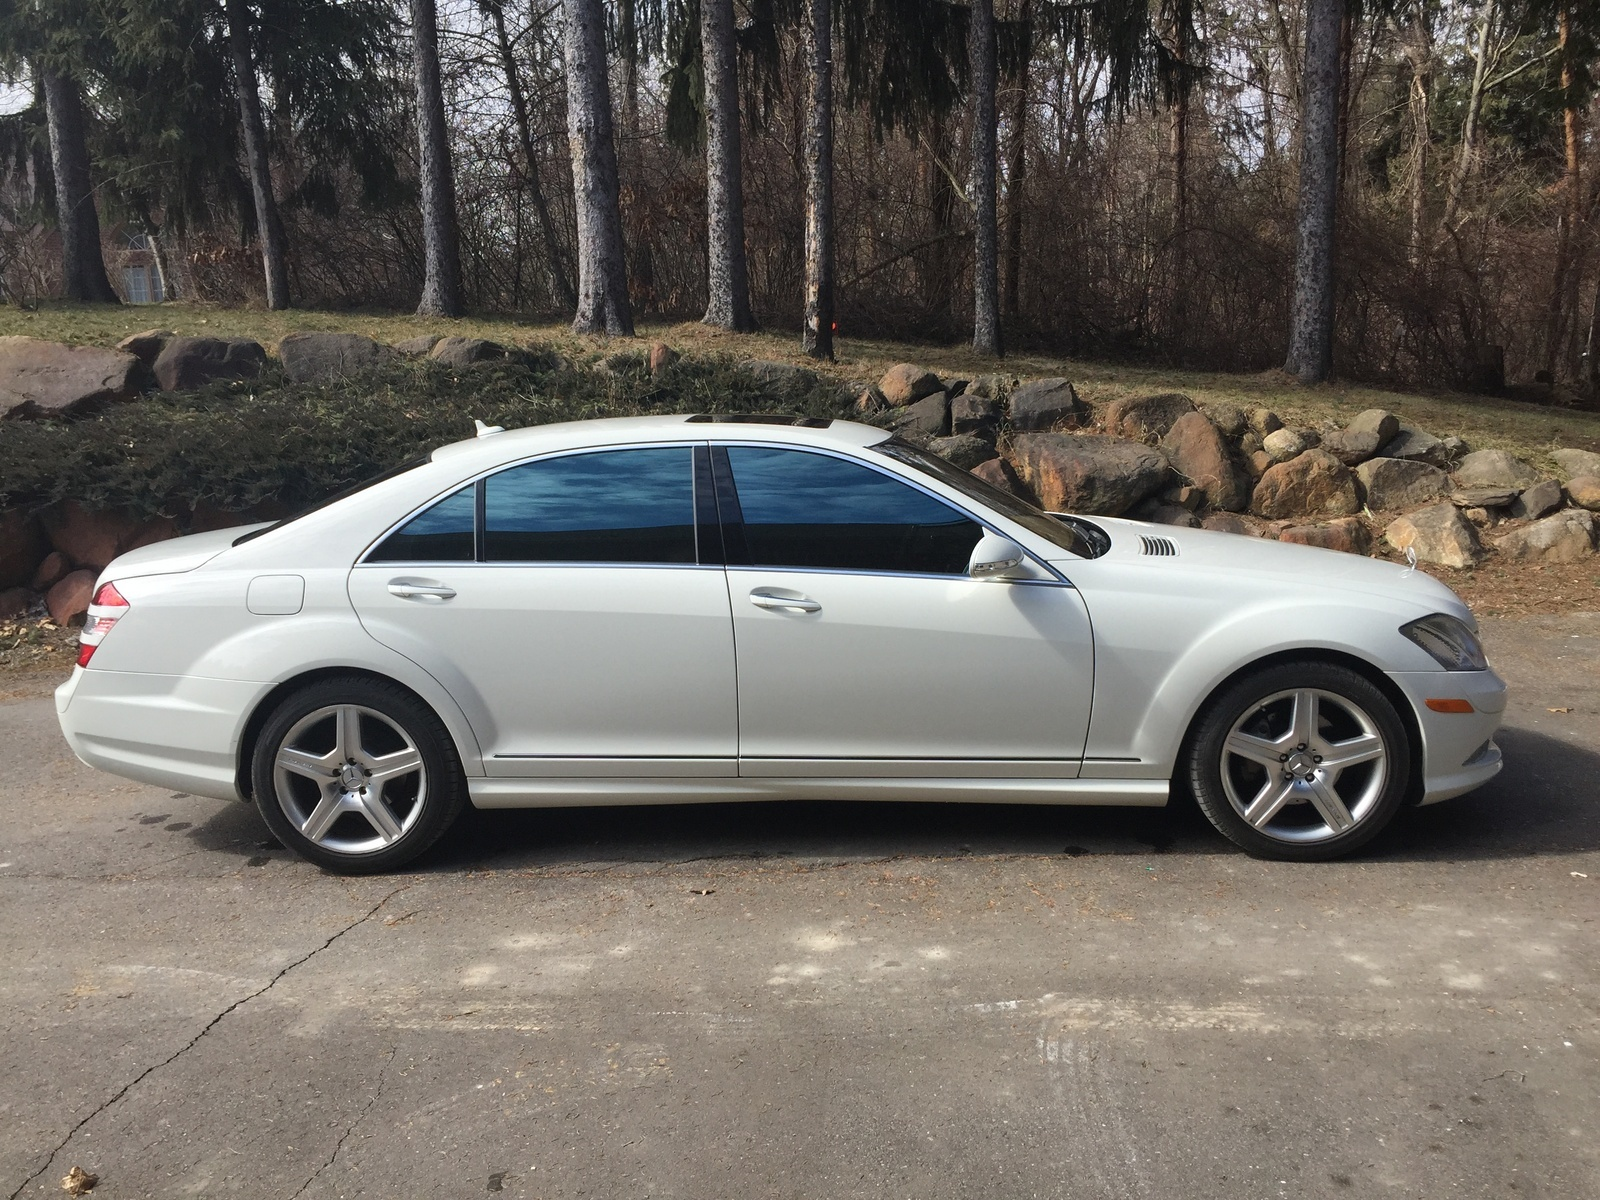 2007 mercedes benz s class for sale in detroit mi cargurus. Black Bedroom Furniture Sets. Home Design Ideas